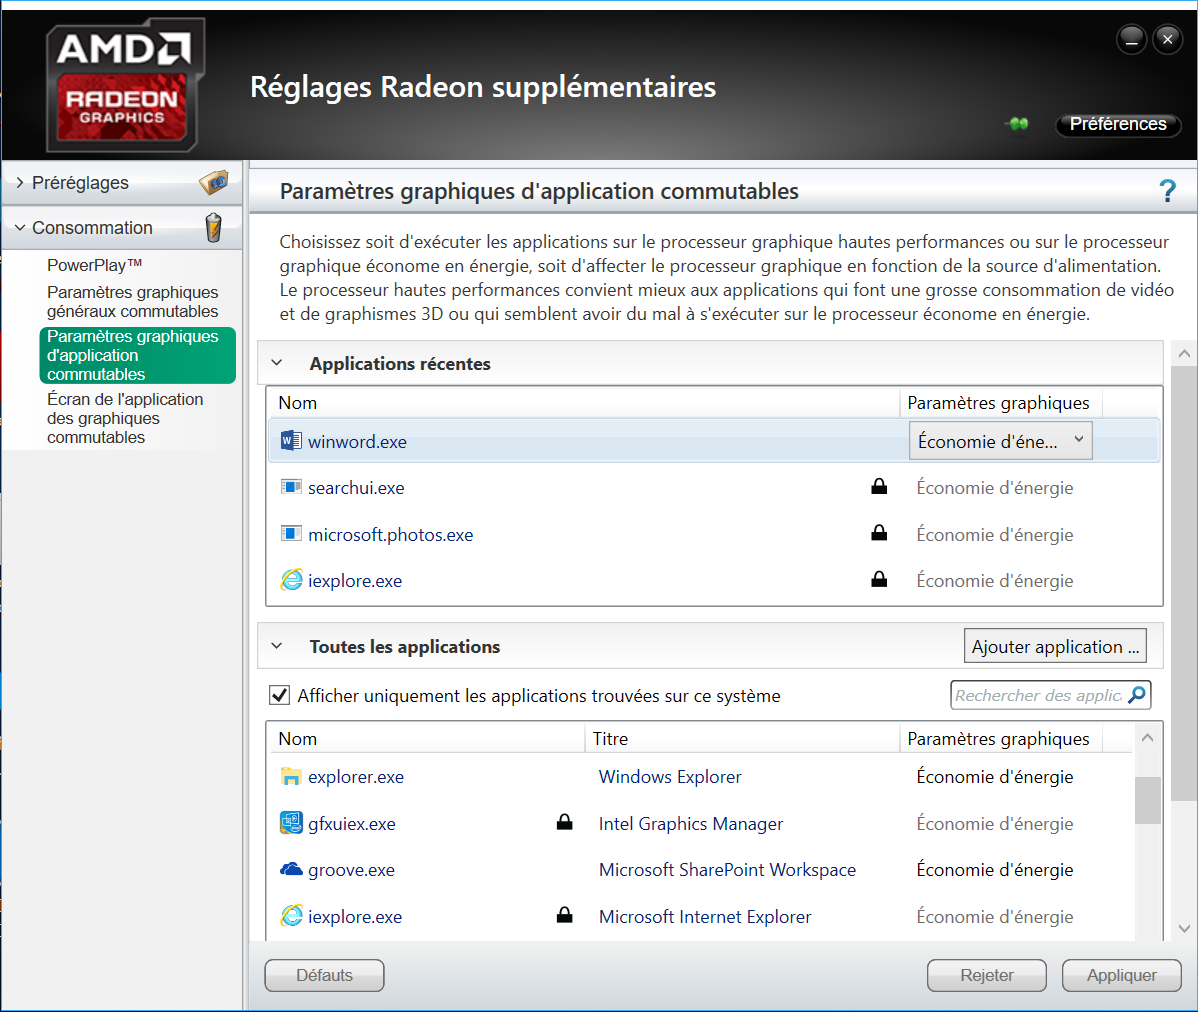 RADEON graphics settings